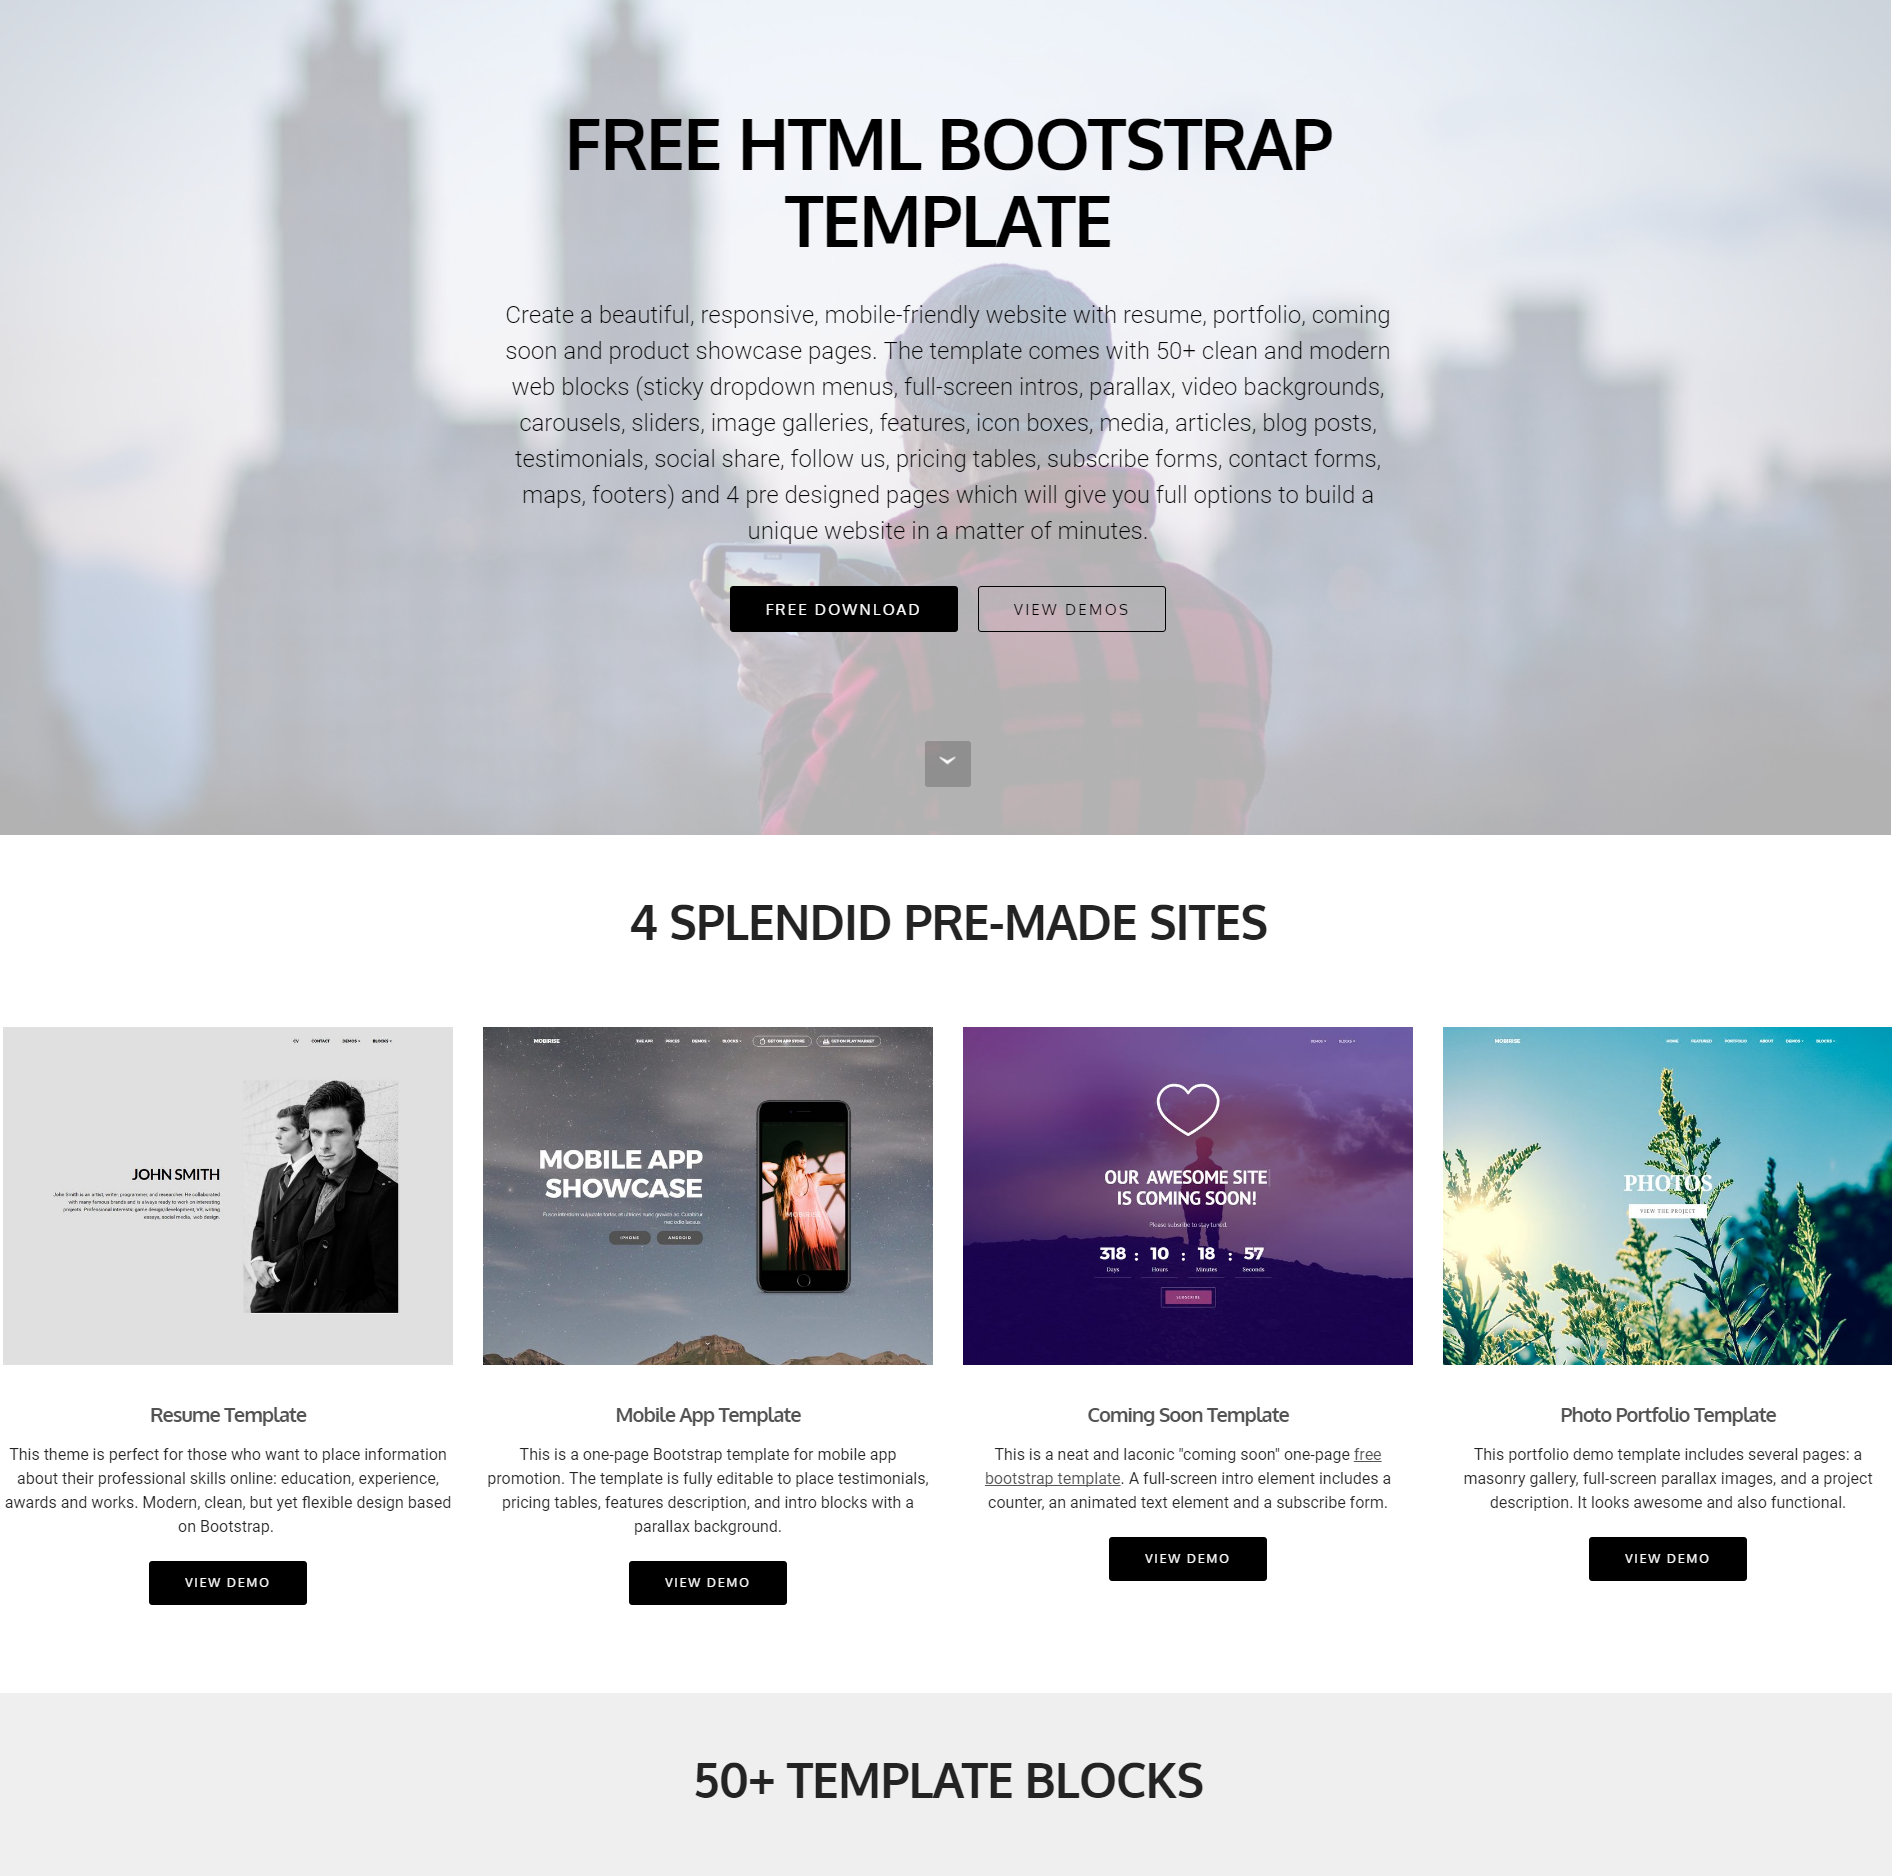 30+ Excellent Free HTML5 Bootstrap Templates 2018